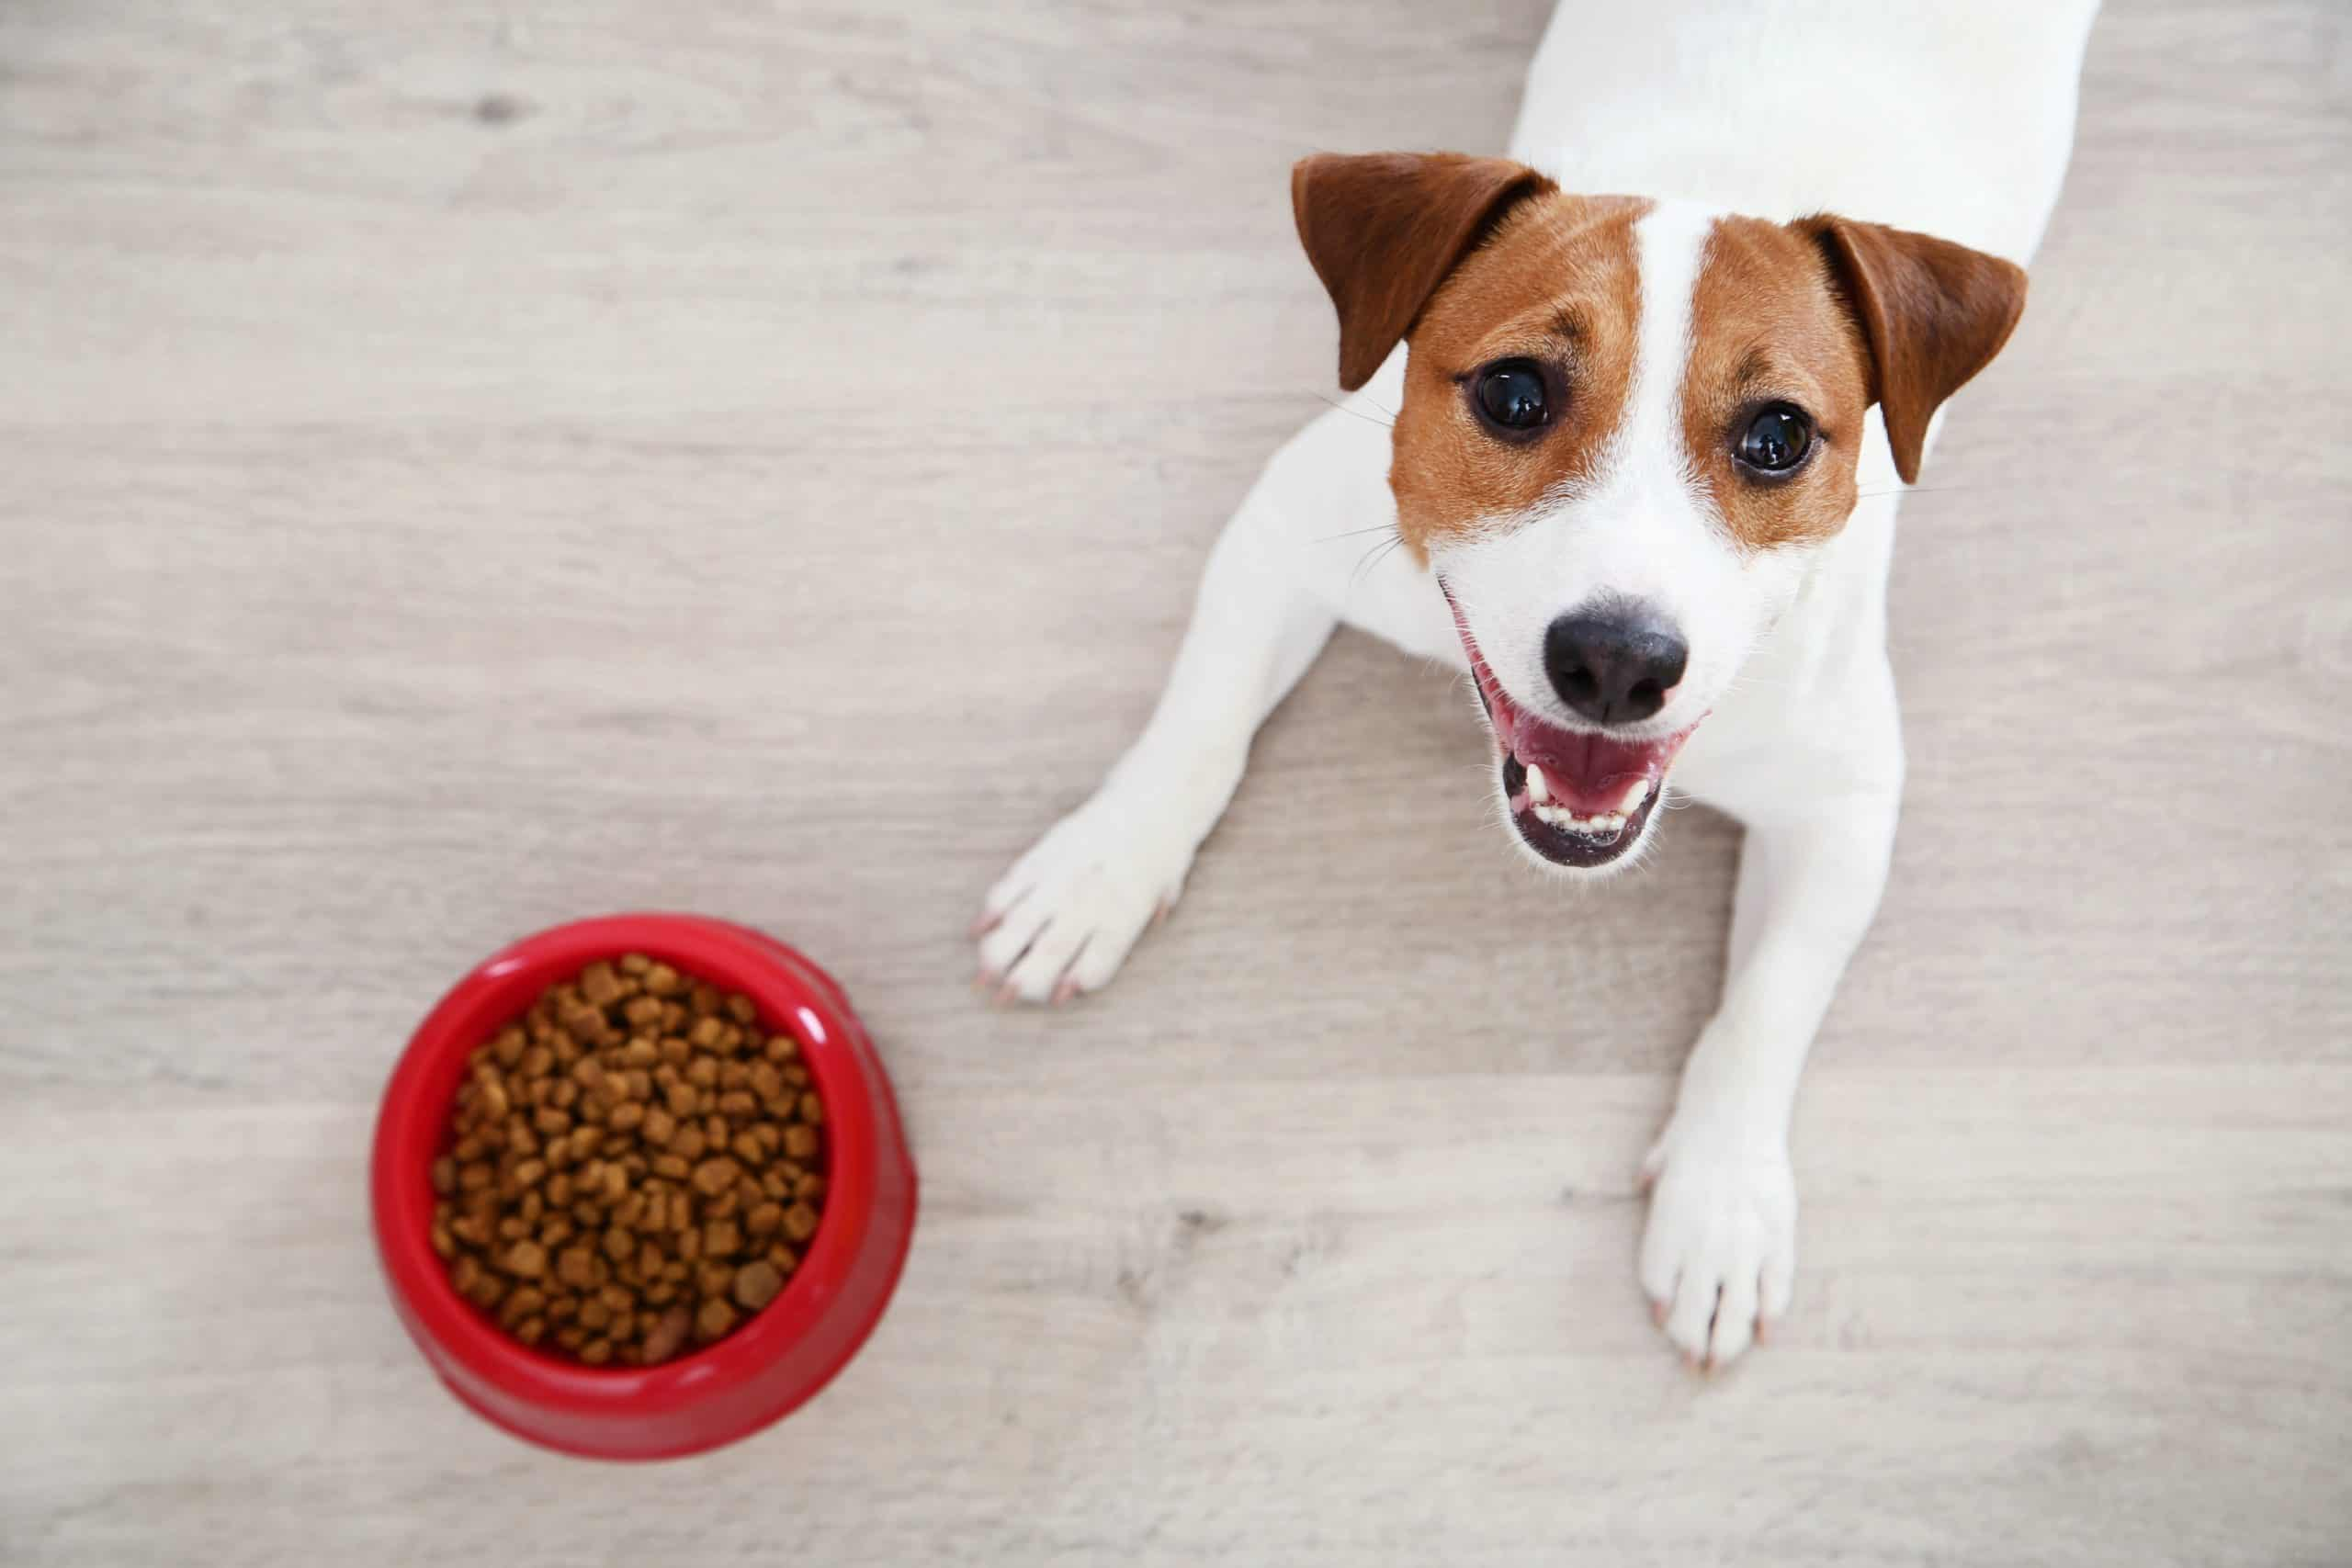 Happy Jack Russell Terrier with a bowl of dry dog food. Keeping your dog at a healthy weight is essential for keeping your dog safe and happy.